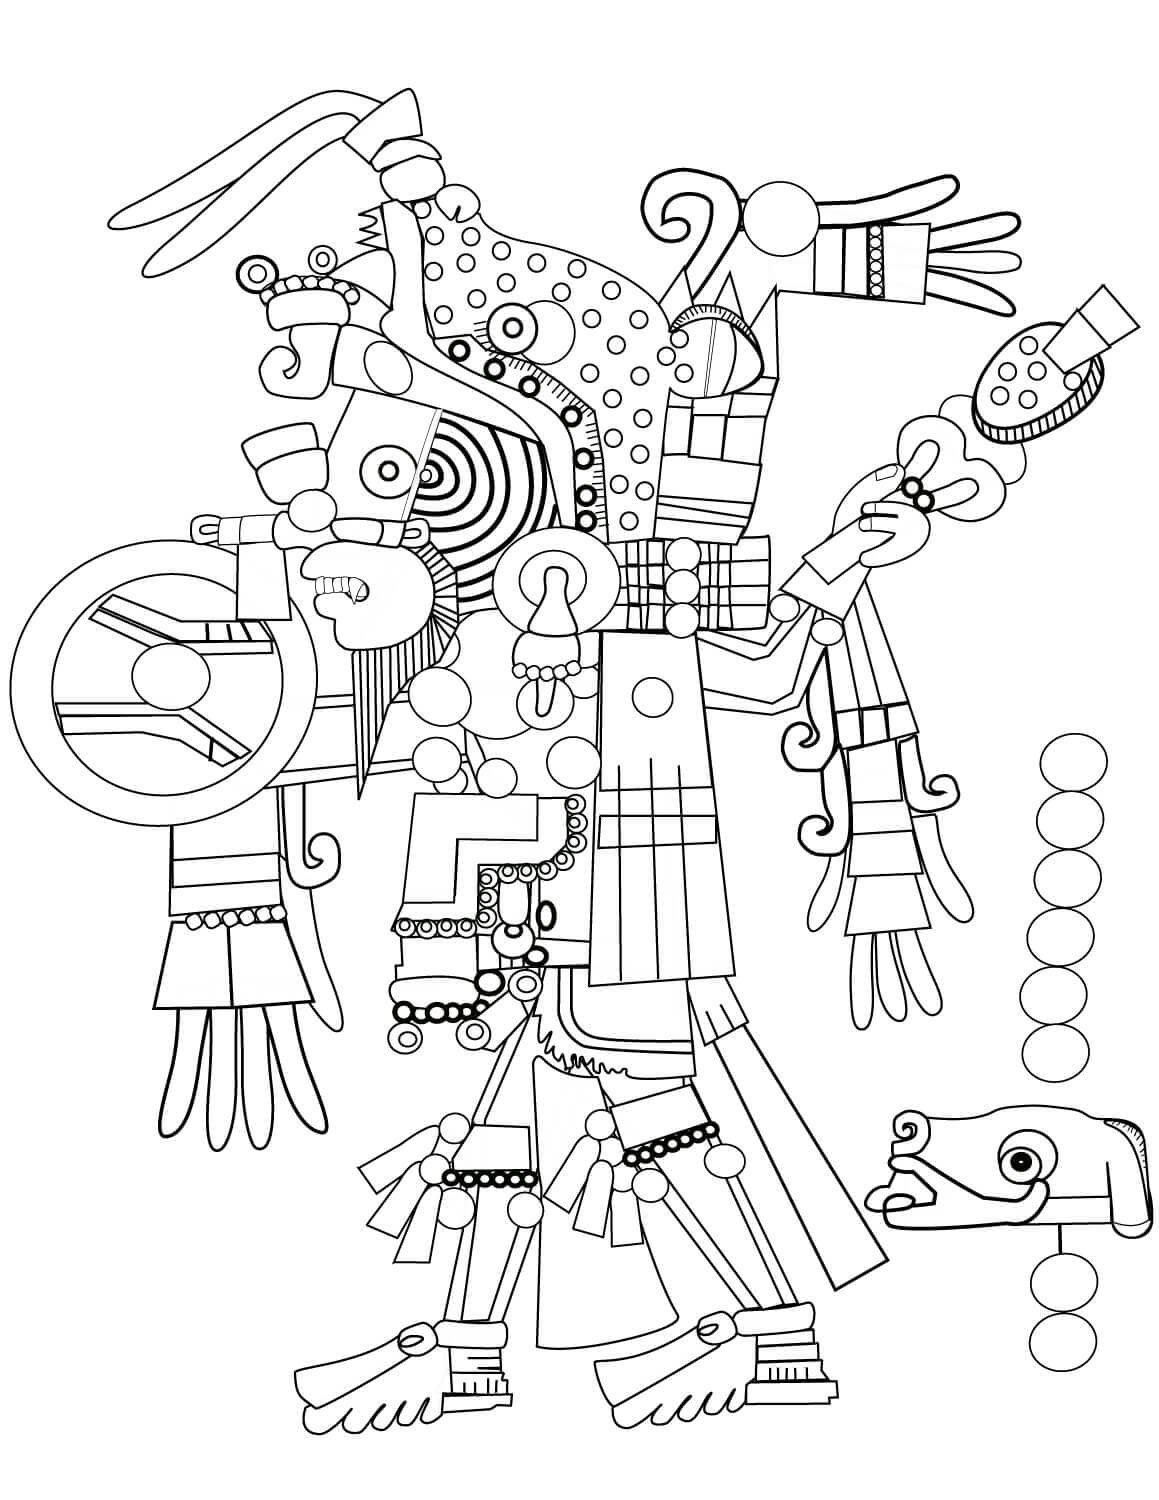 AZTEC-ART-CLipart-Cartoon-Free-Clipart-Line-Drawing-coloring-page-Activity-For-Kids